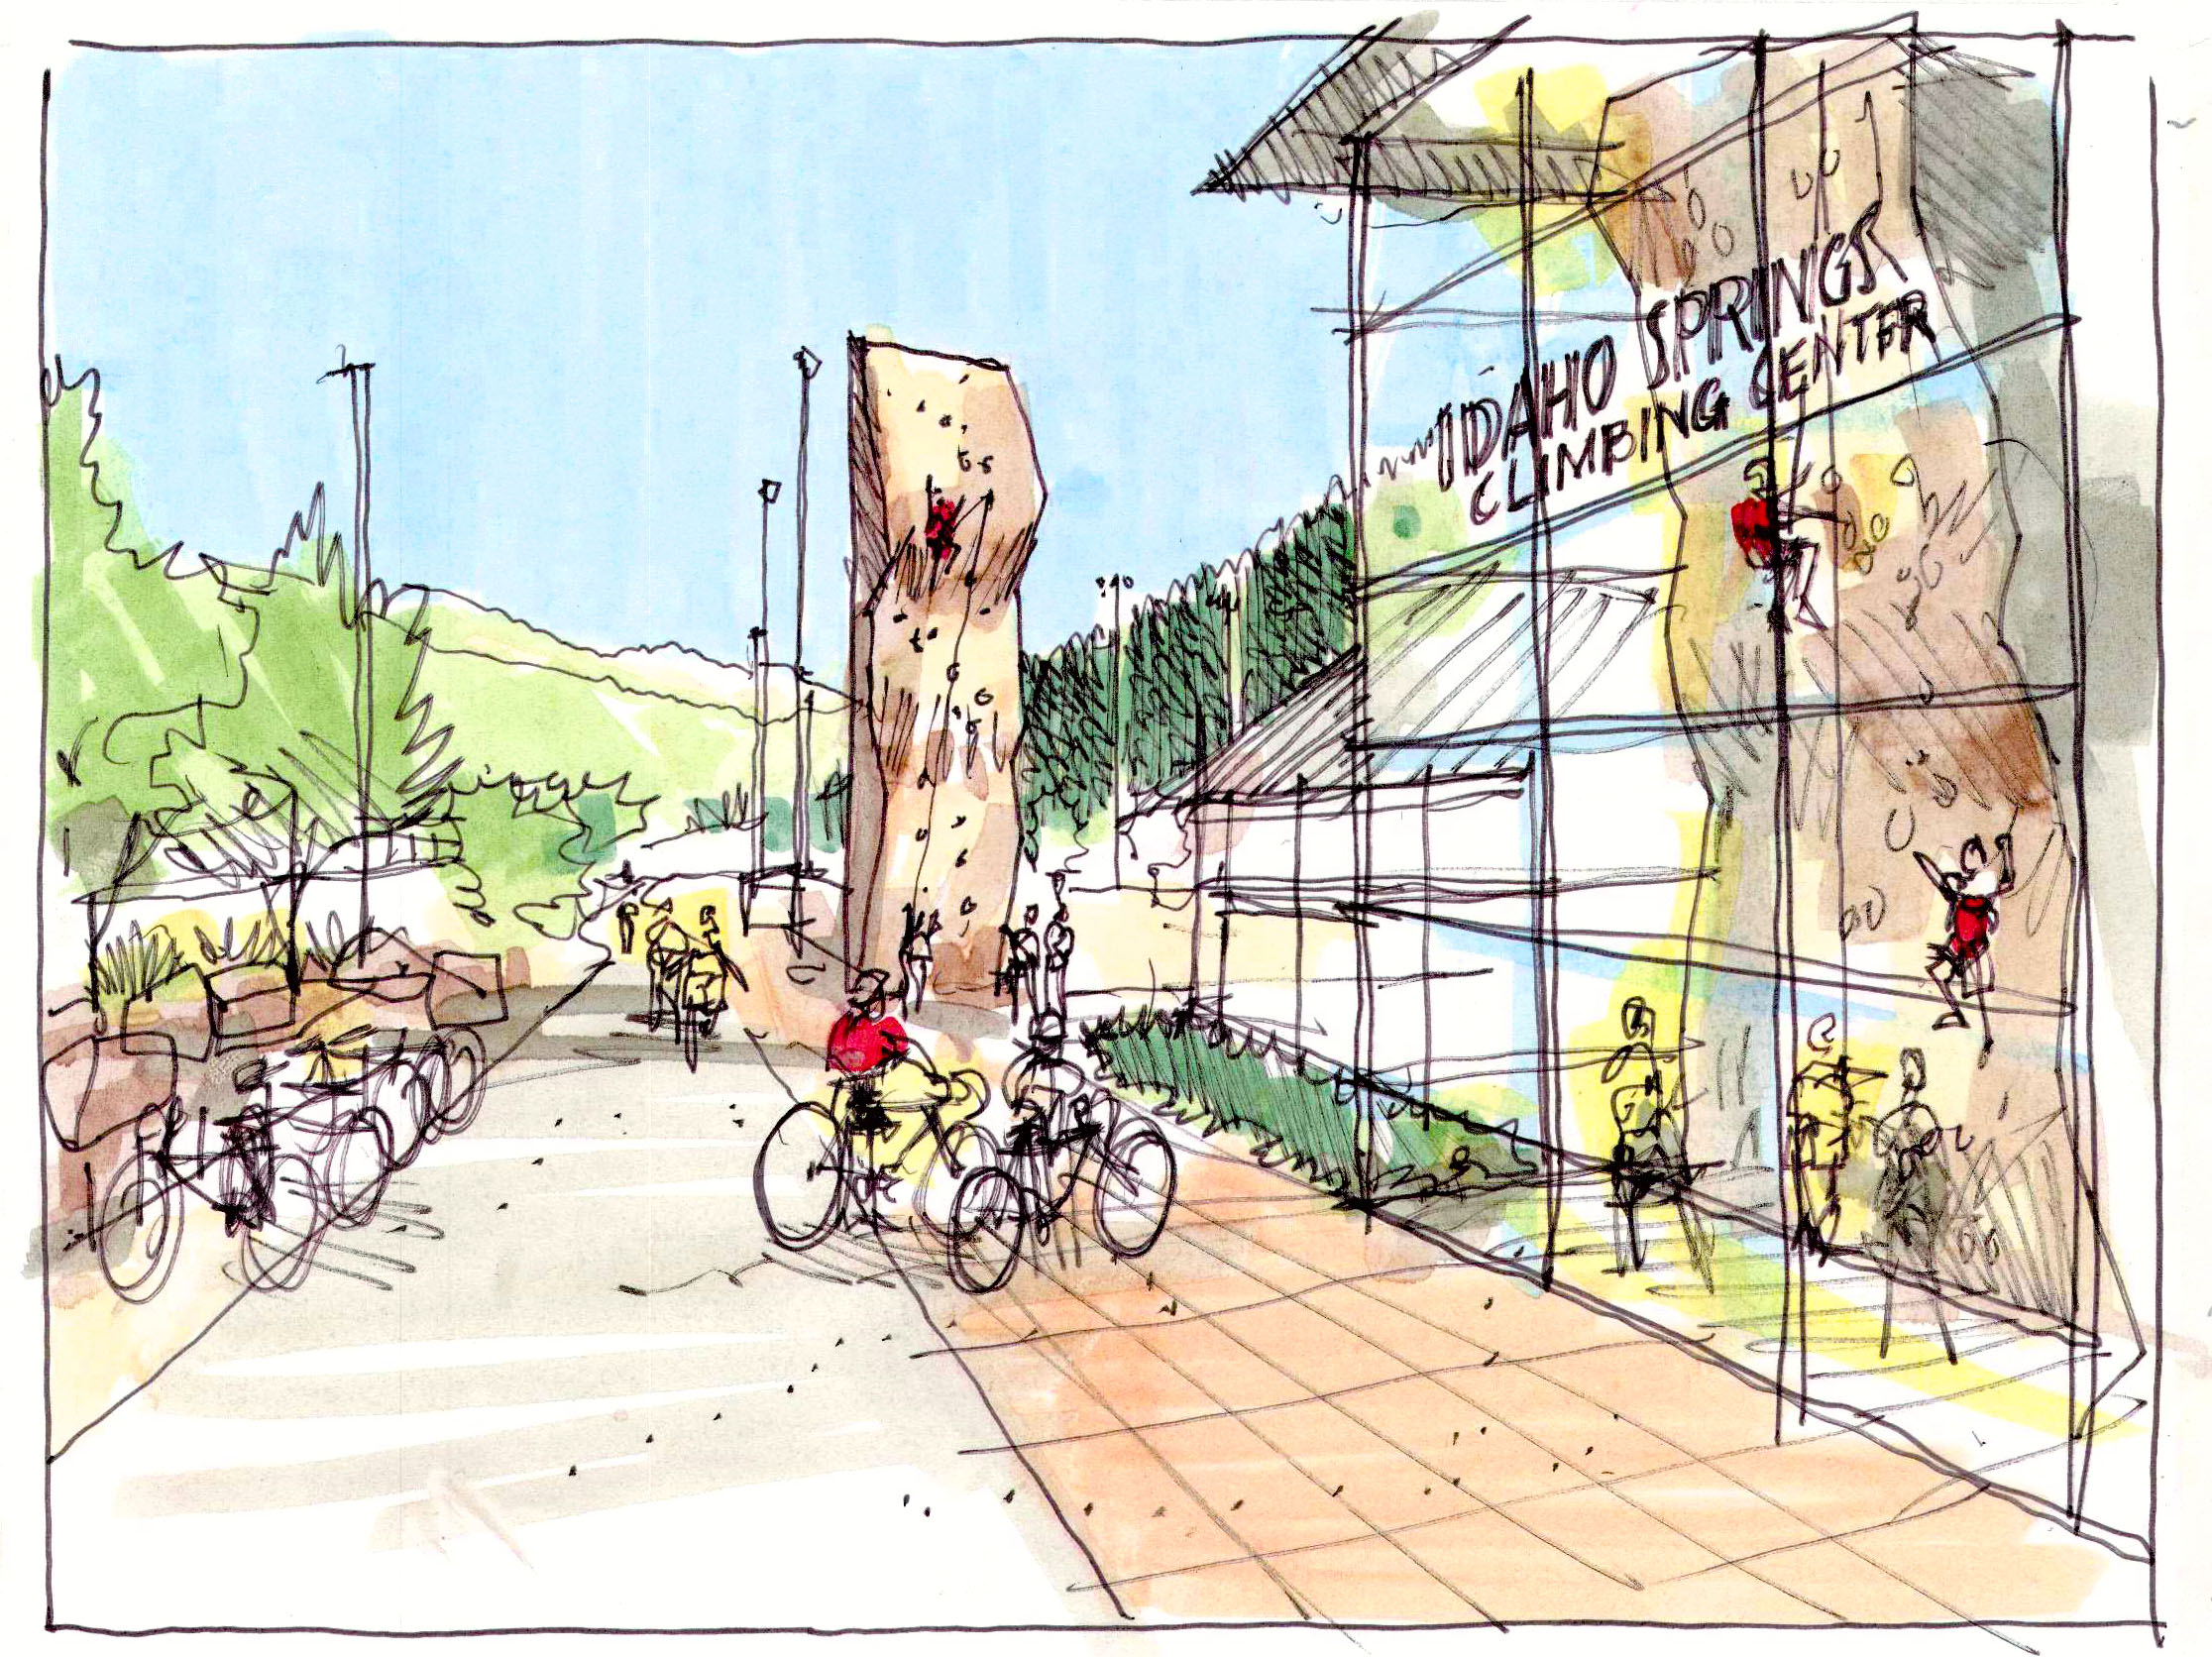 <f>Services</f><f>Planning</f><f>Services</f><f>UrbanDesign</f><f>Markets</f><f>UrbanDesign+Planning</f><t>Idaho Springs East End Action Plan</t><m>Idaho Springs, CO</m>